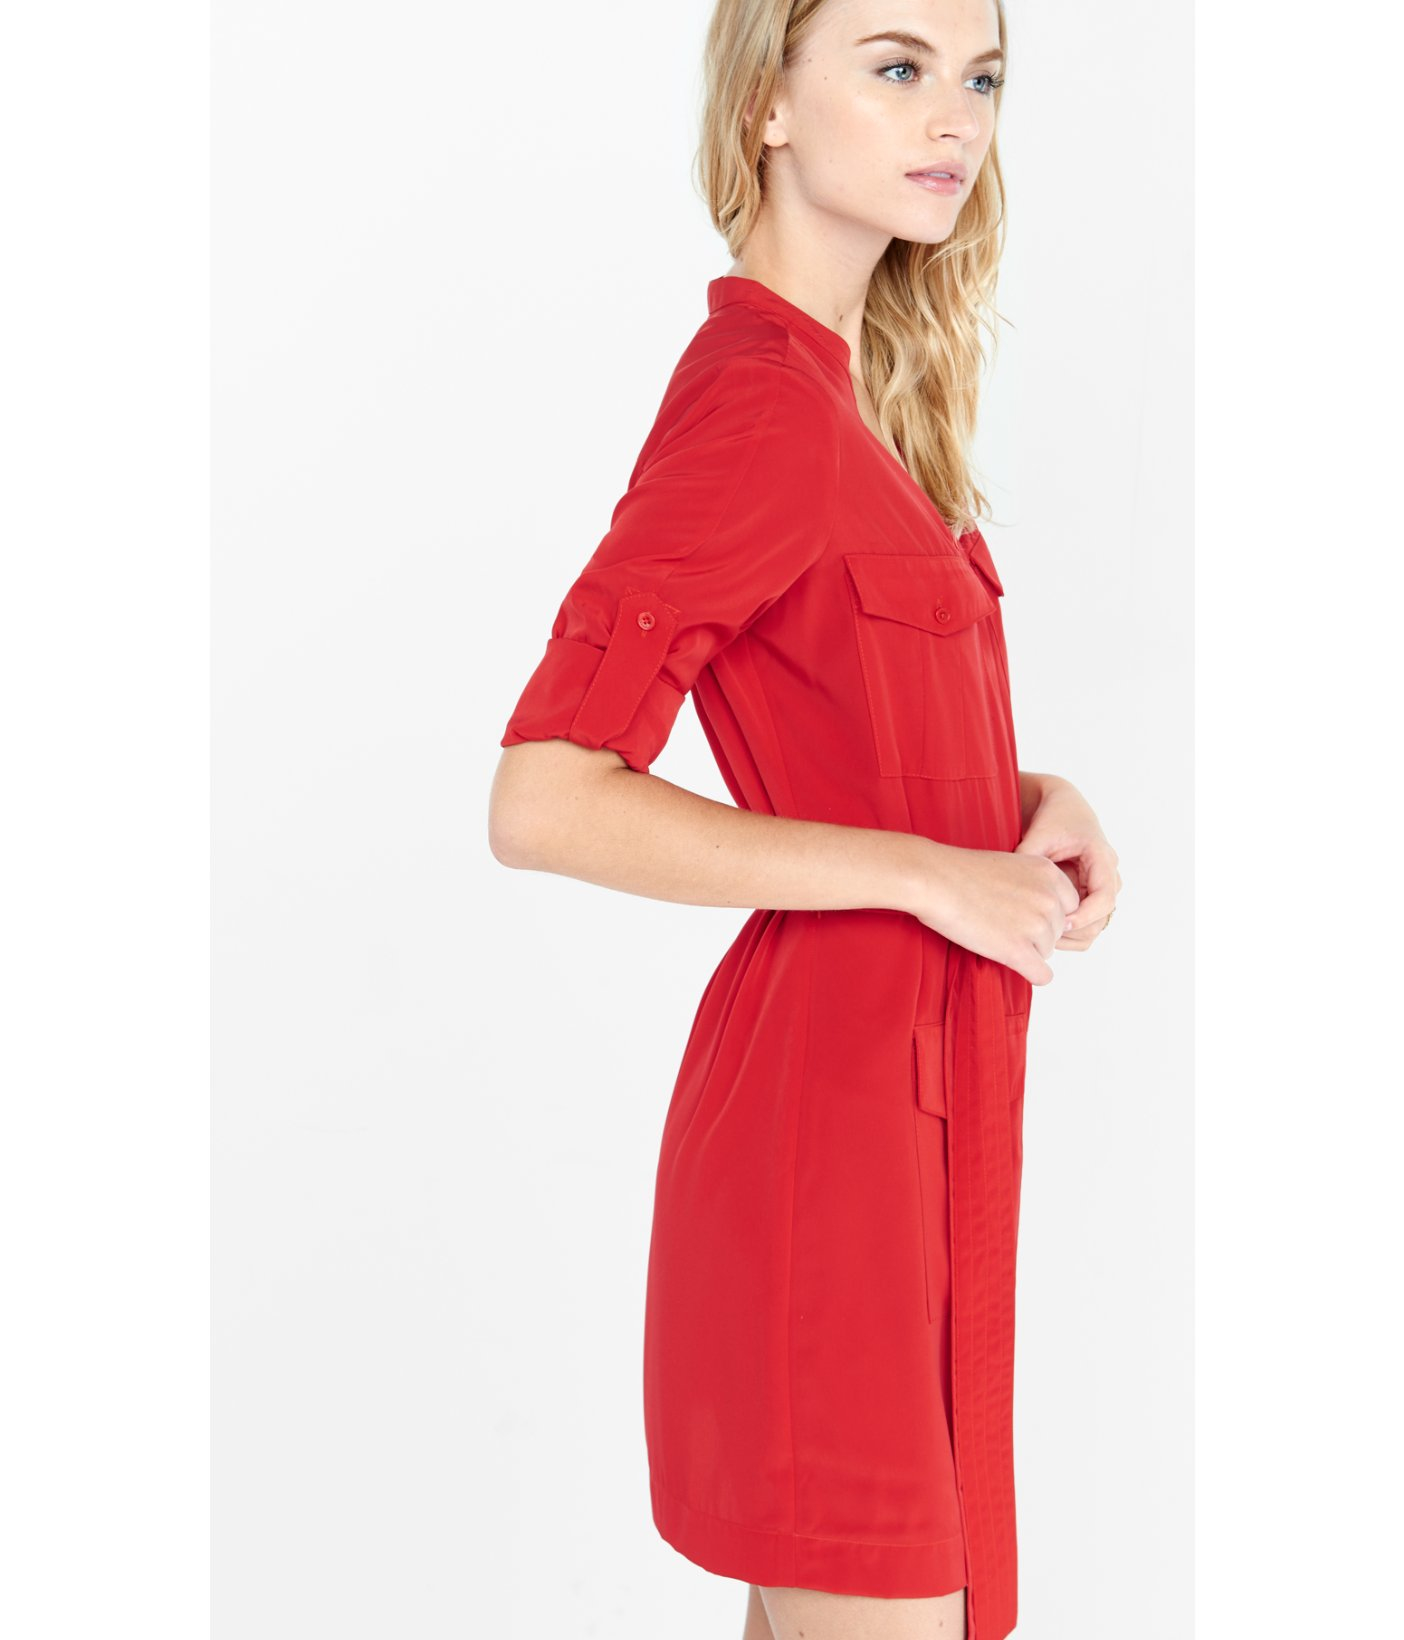 Express Red Four Pocket Military Shirt Dress in Red | Lyst